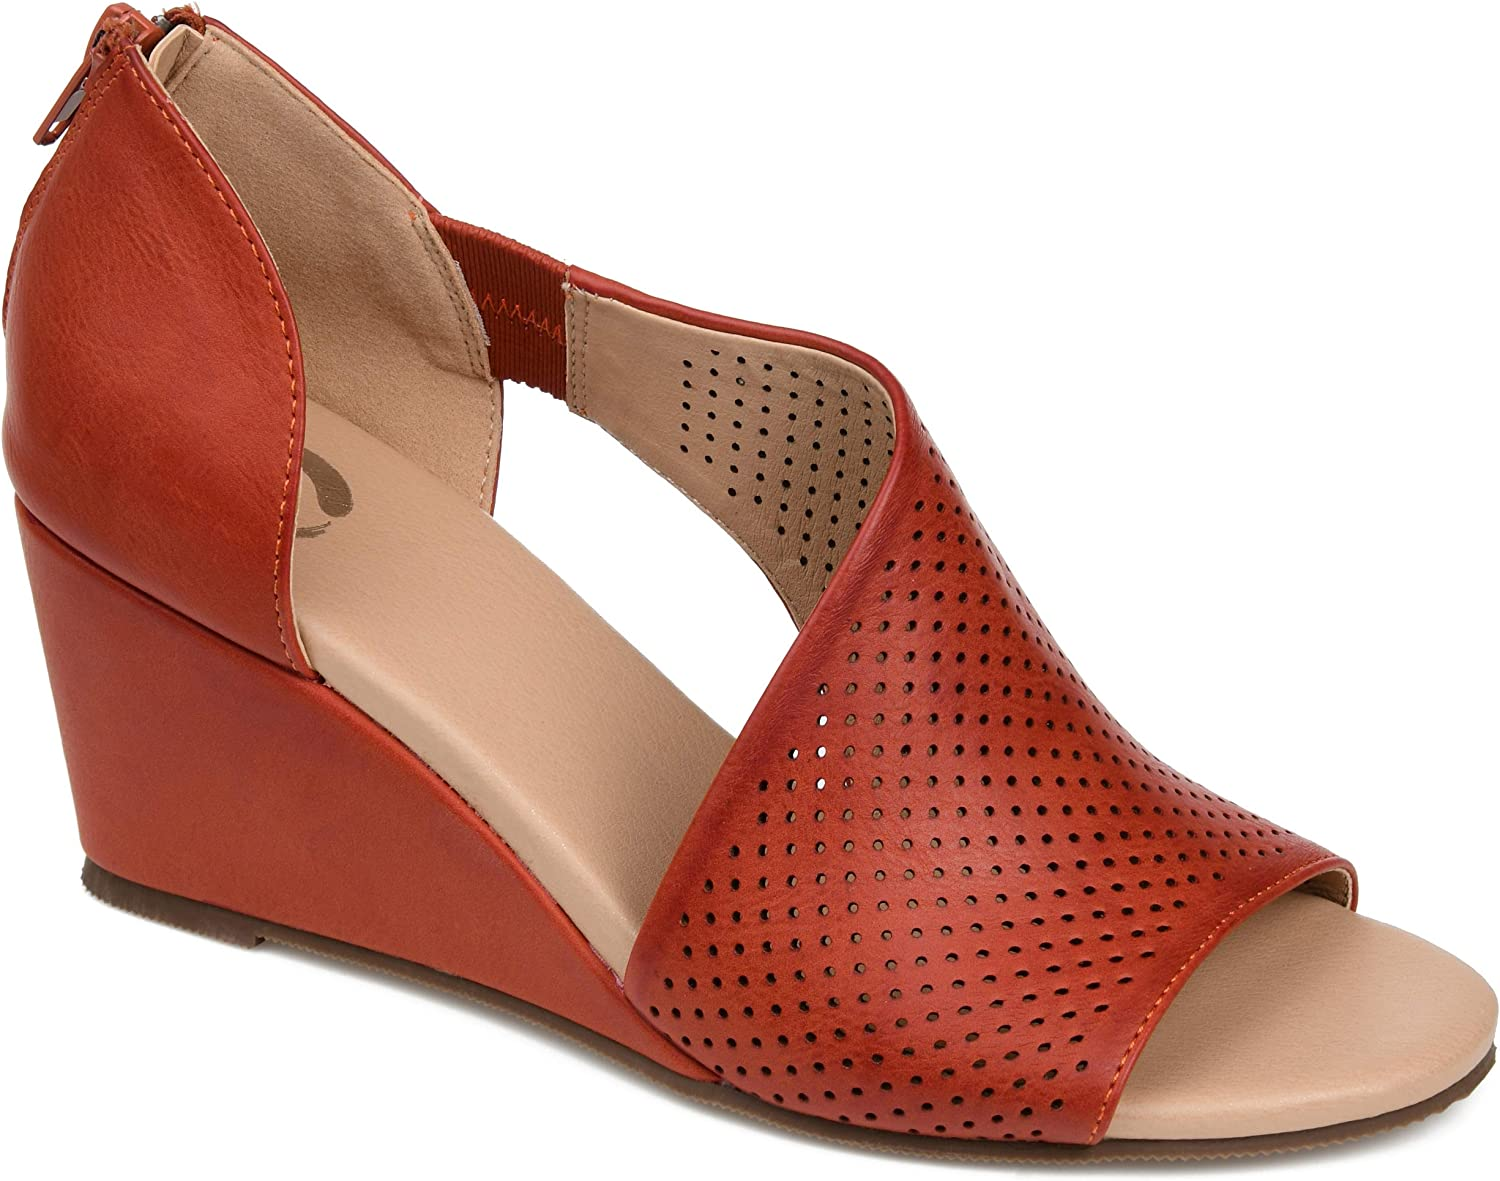 Journee Collection Women's Wedge Aretha low-pricing OFFicial